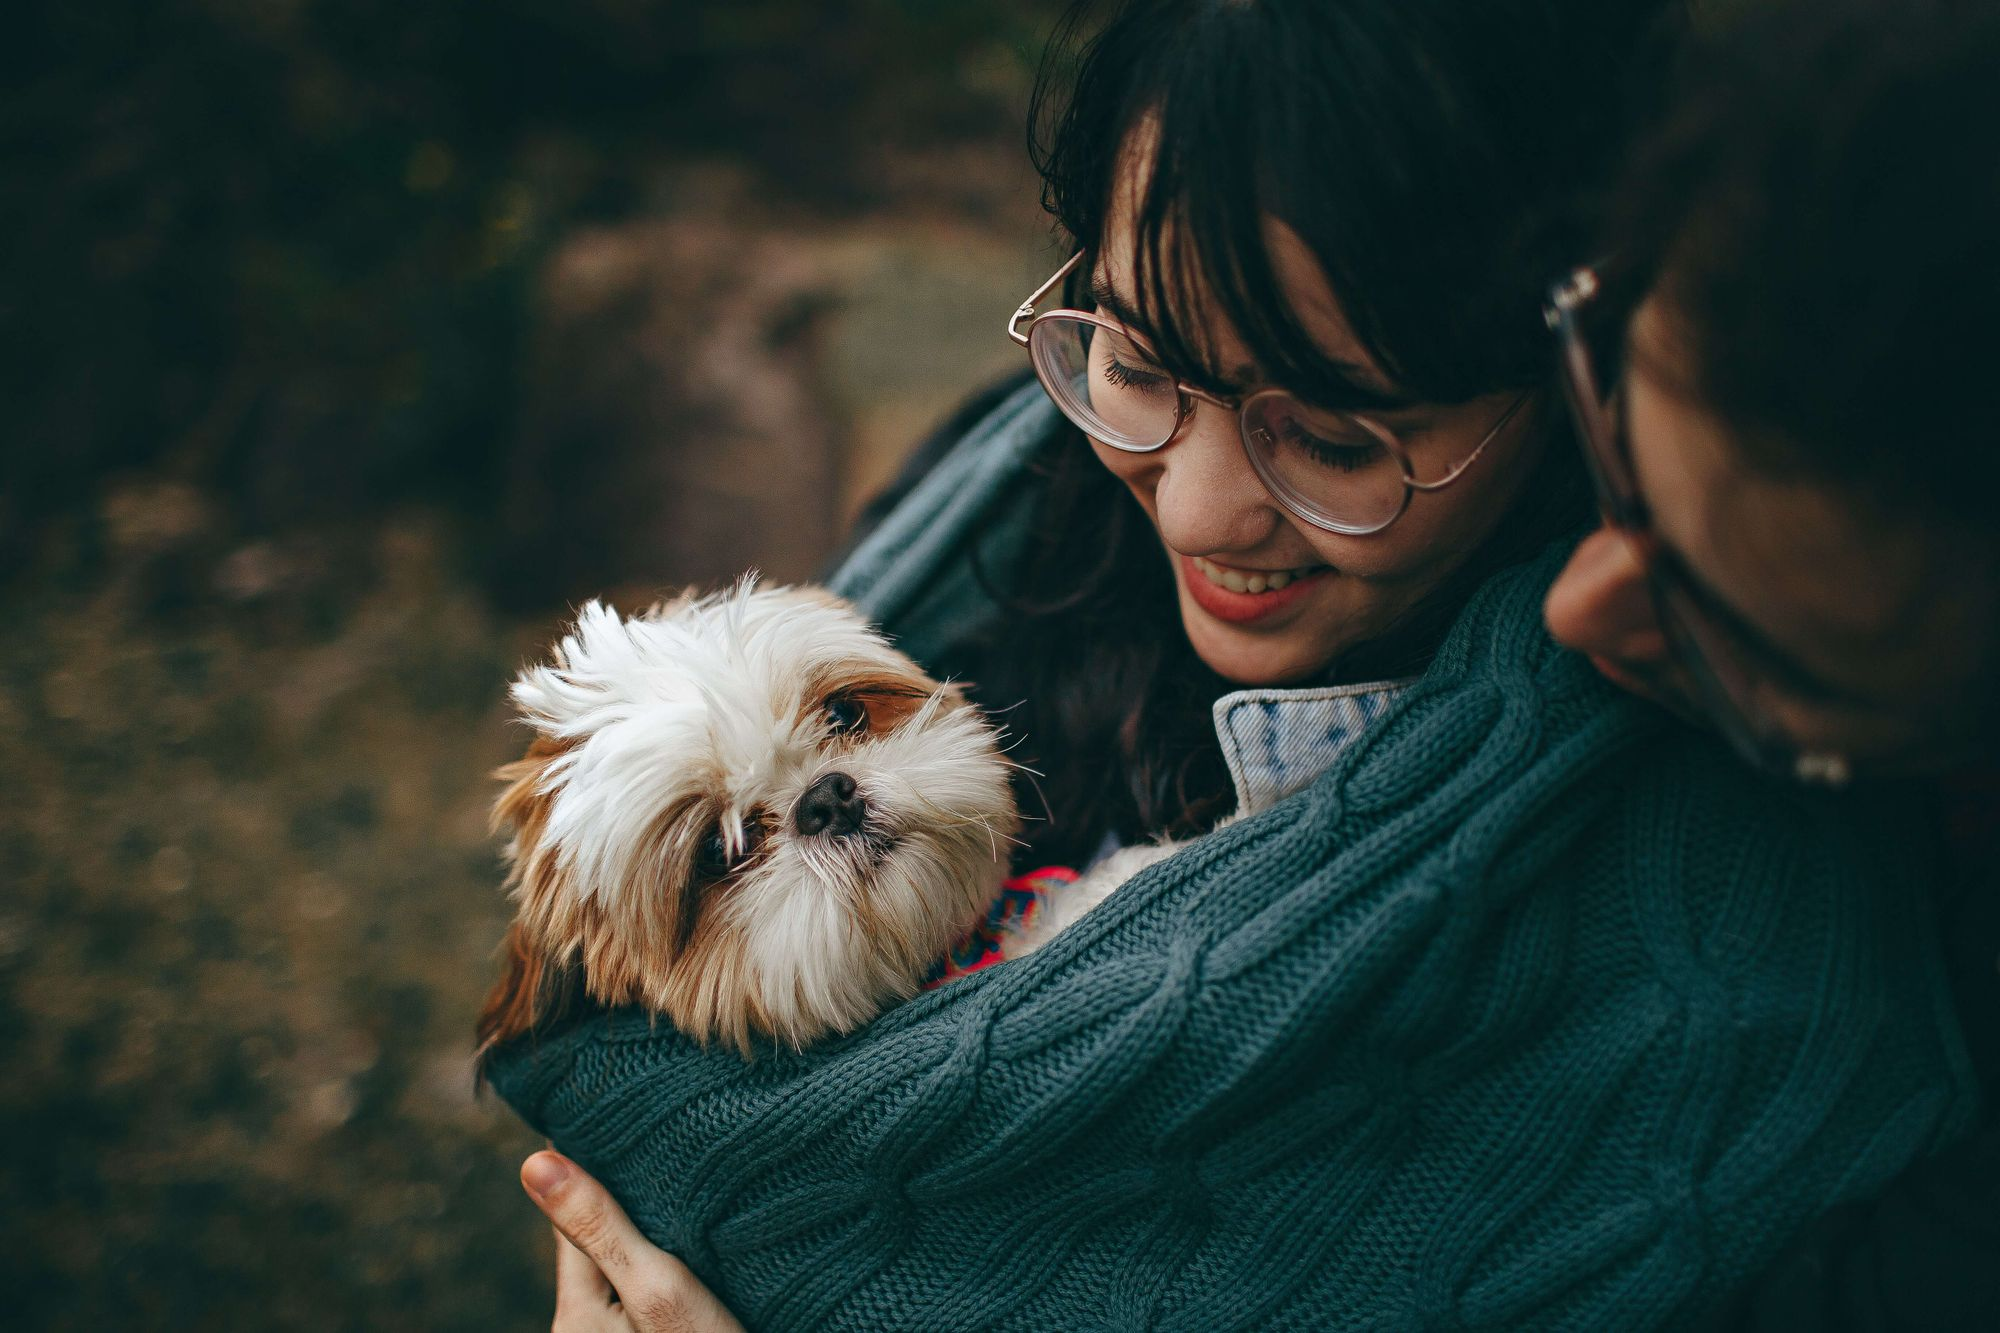 couple-hold-small-white-Shih-Tzu-in-folds-of-a-sweater--1-